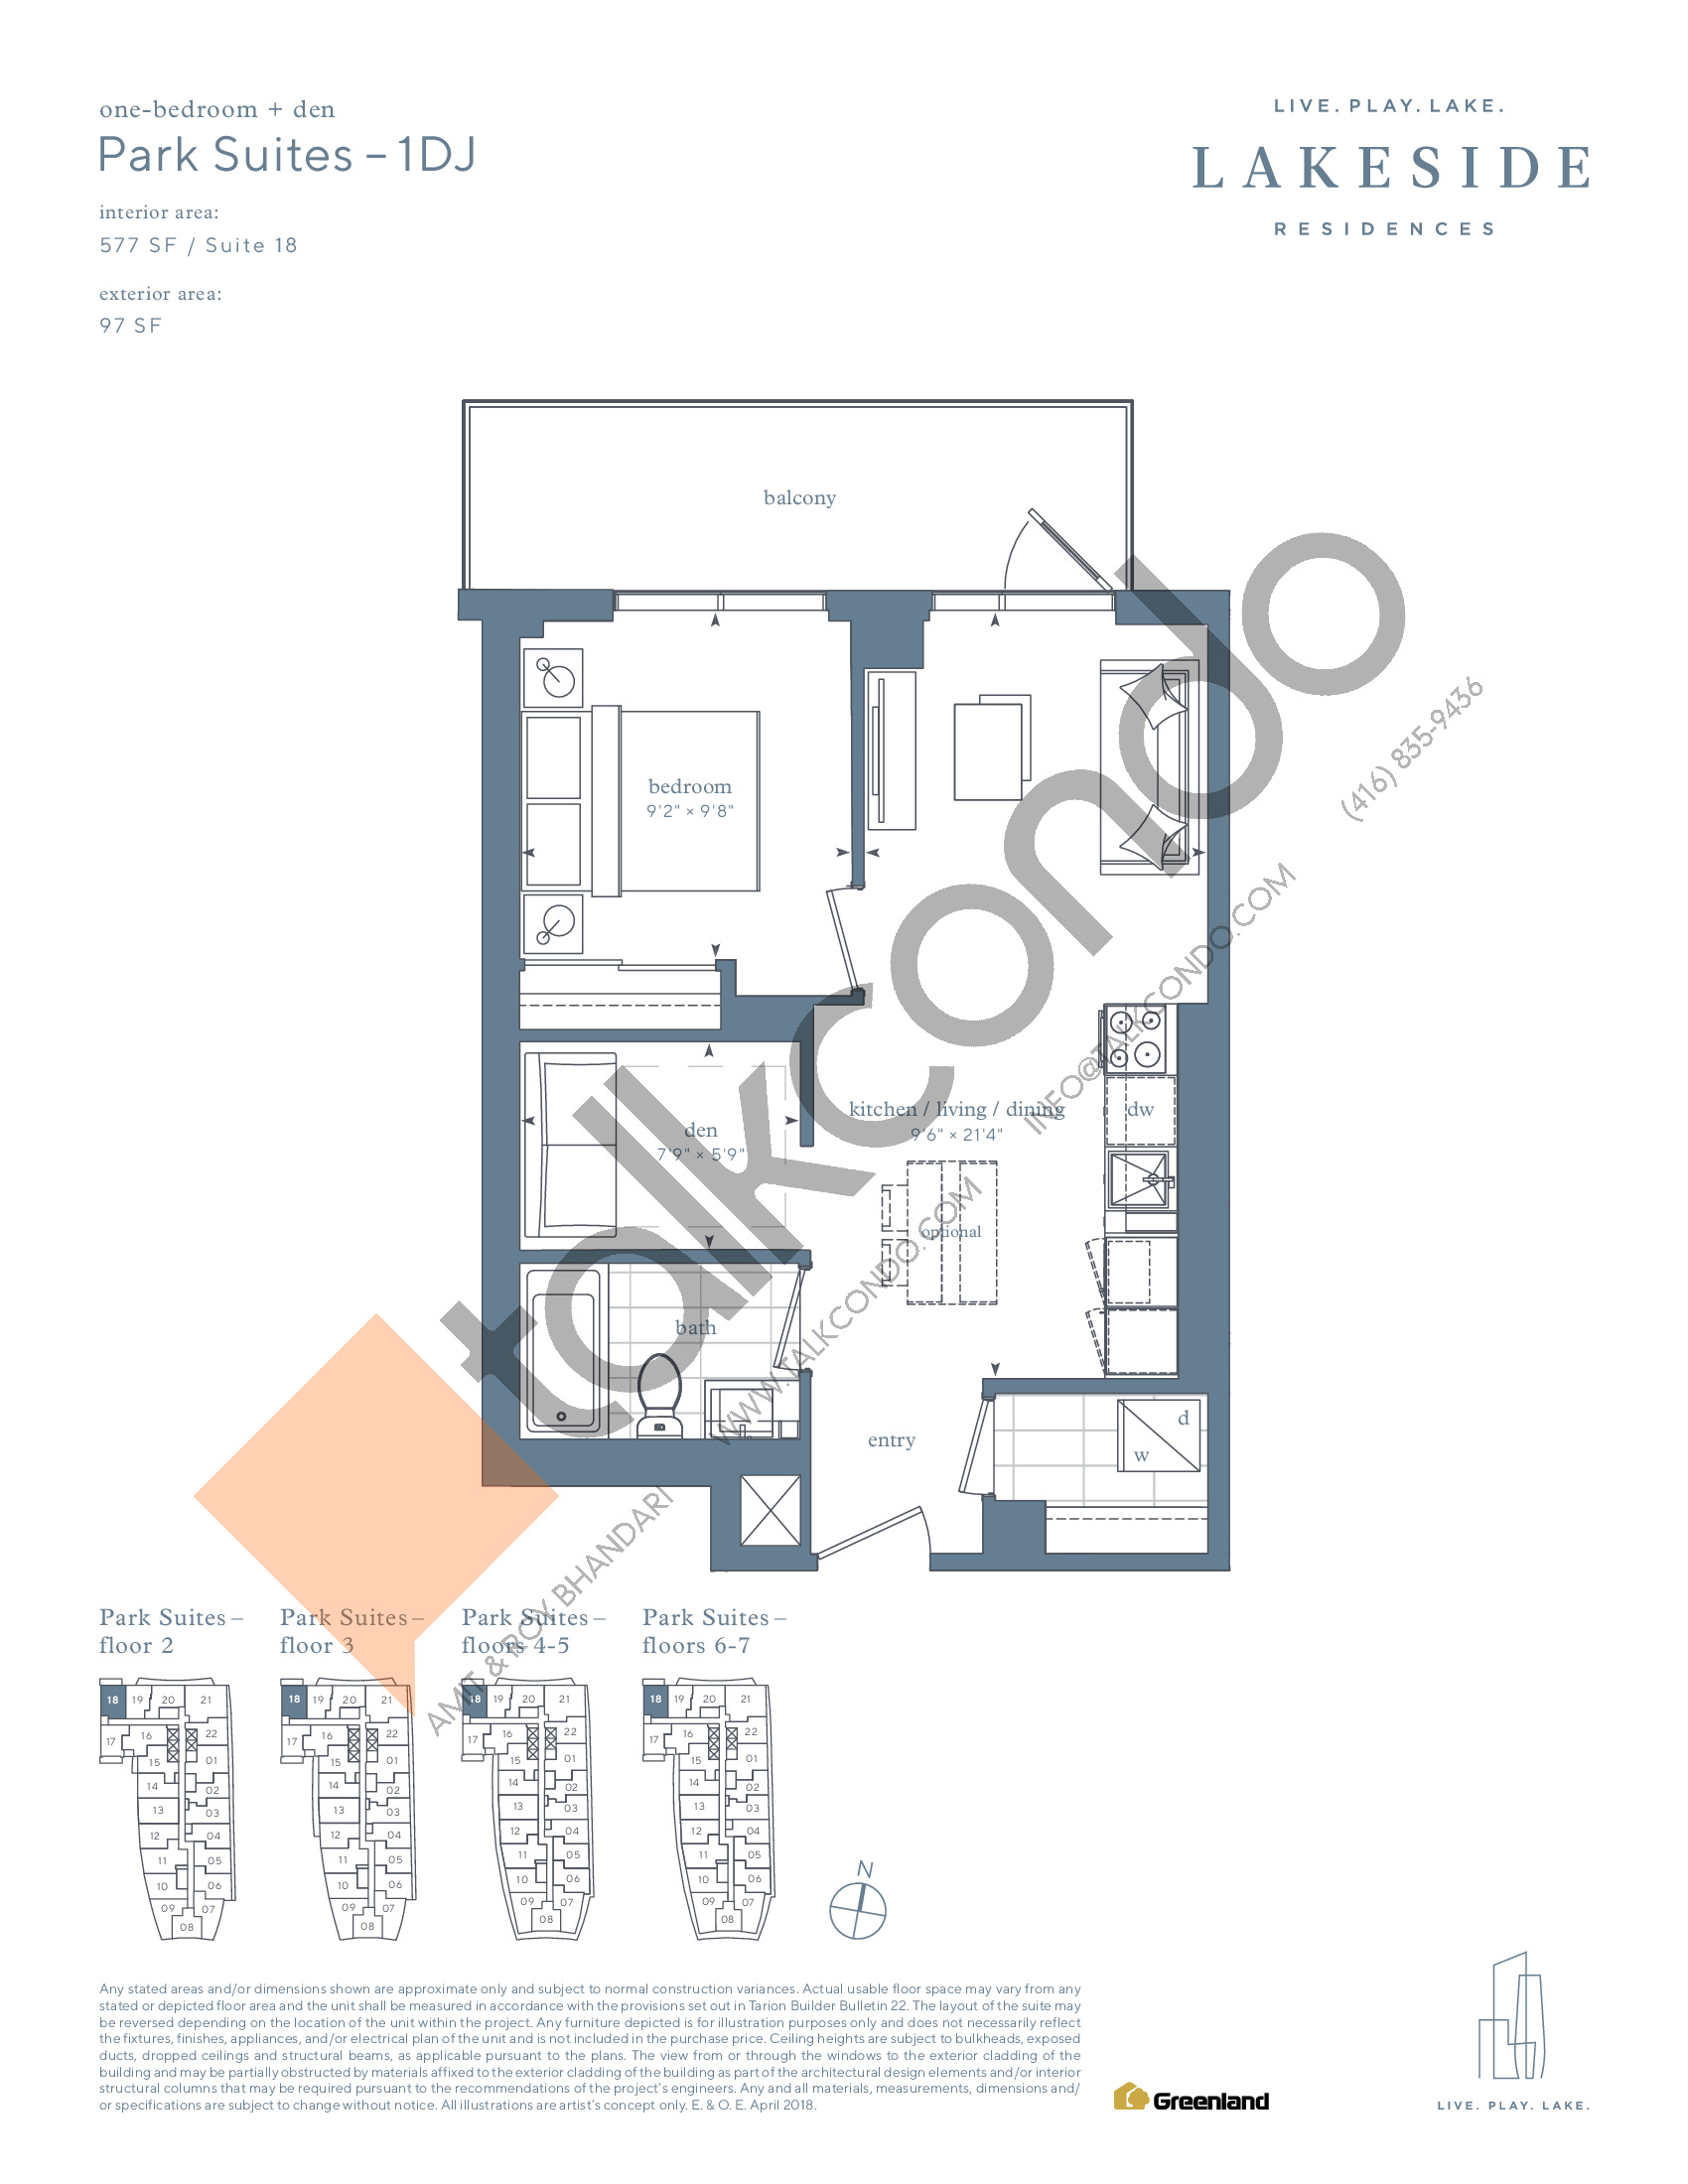 Park Suites - 1DJ Floor Plan at Lakeside Residences - 577 sq.ft